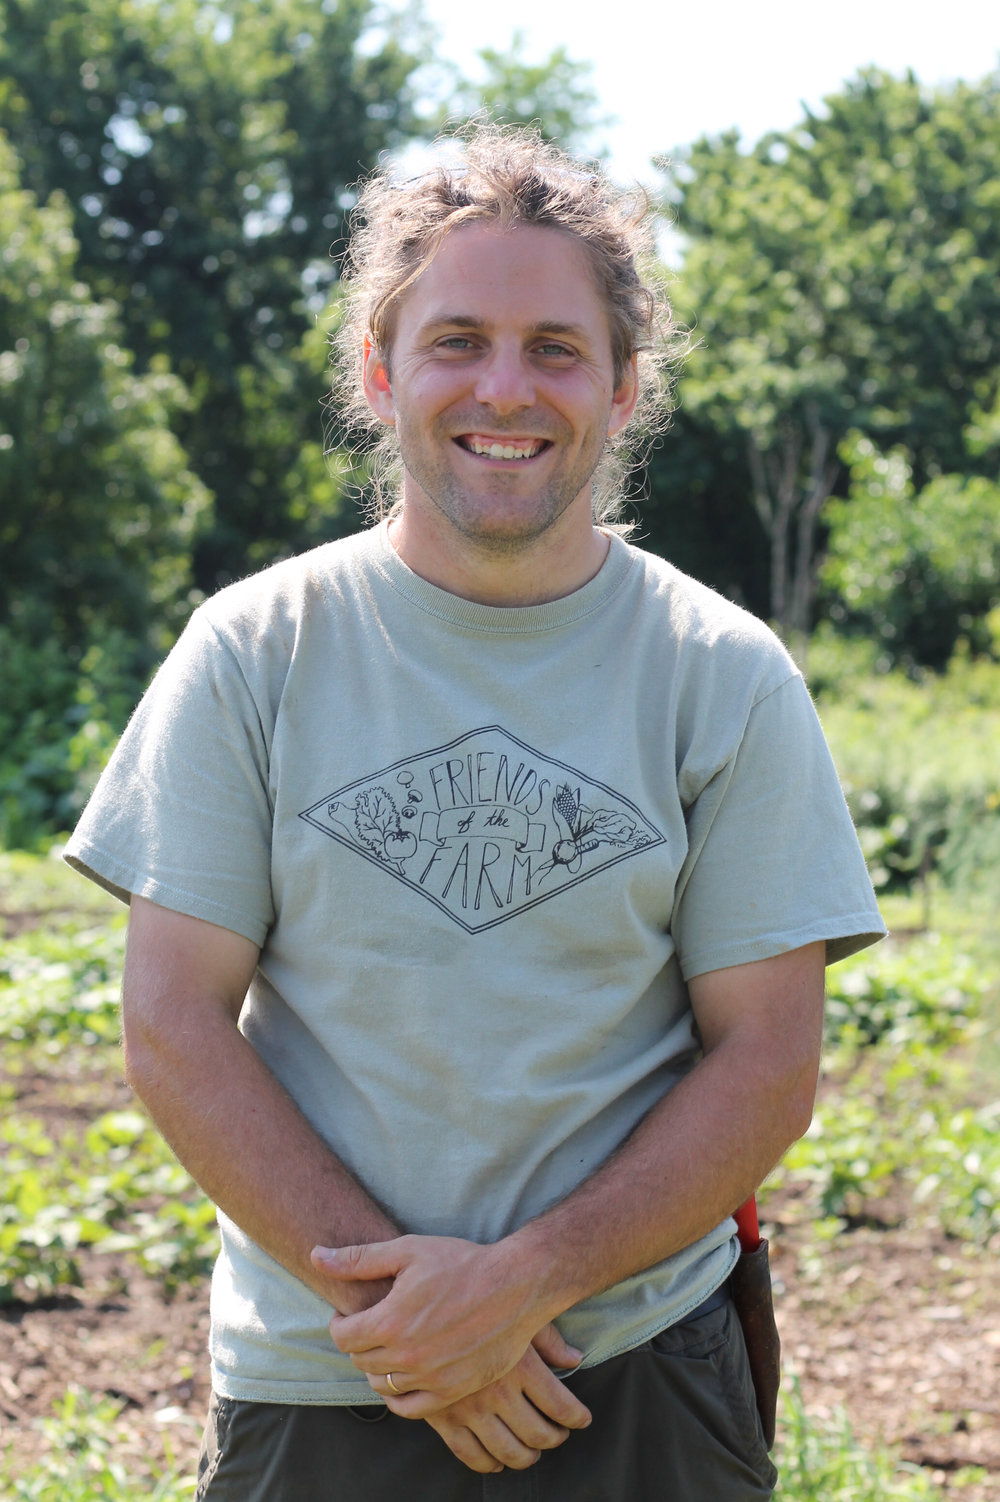 Jon - Jon is driven to bridge the gap between farm and table. He works in the fields five days a week and runs his own omelette bar at the Bryn Athyn Bounty Farm Market on Saturday mornings. In 2013 he recieved his PDC from Milkwood permaculture, and has been growing his knowlage about small scale organic farming ever since.